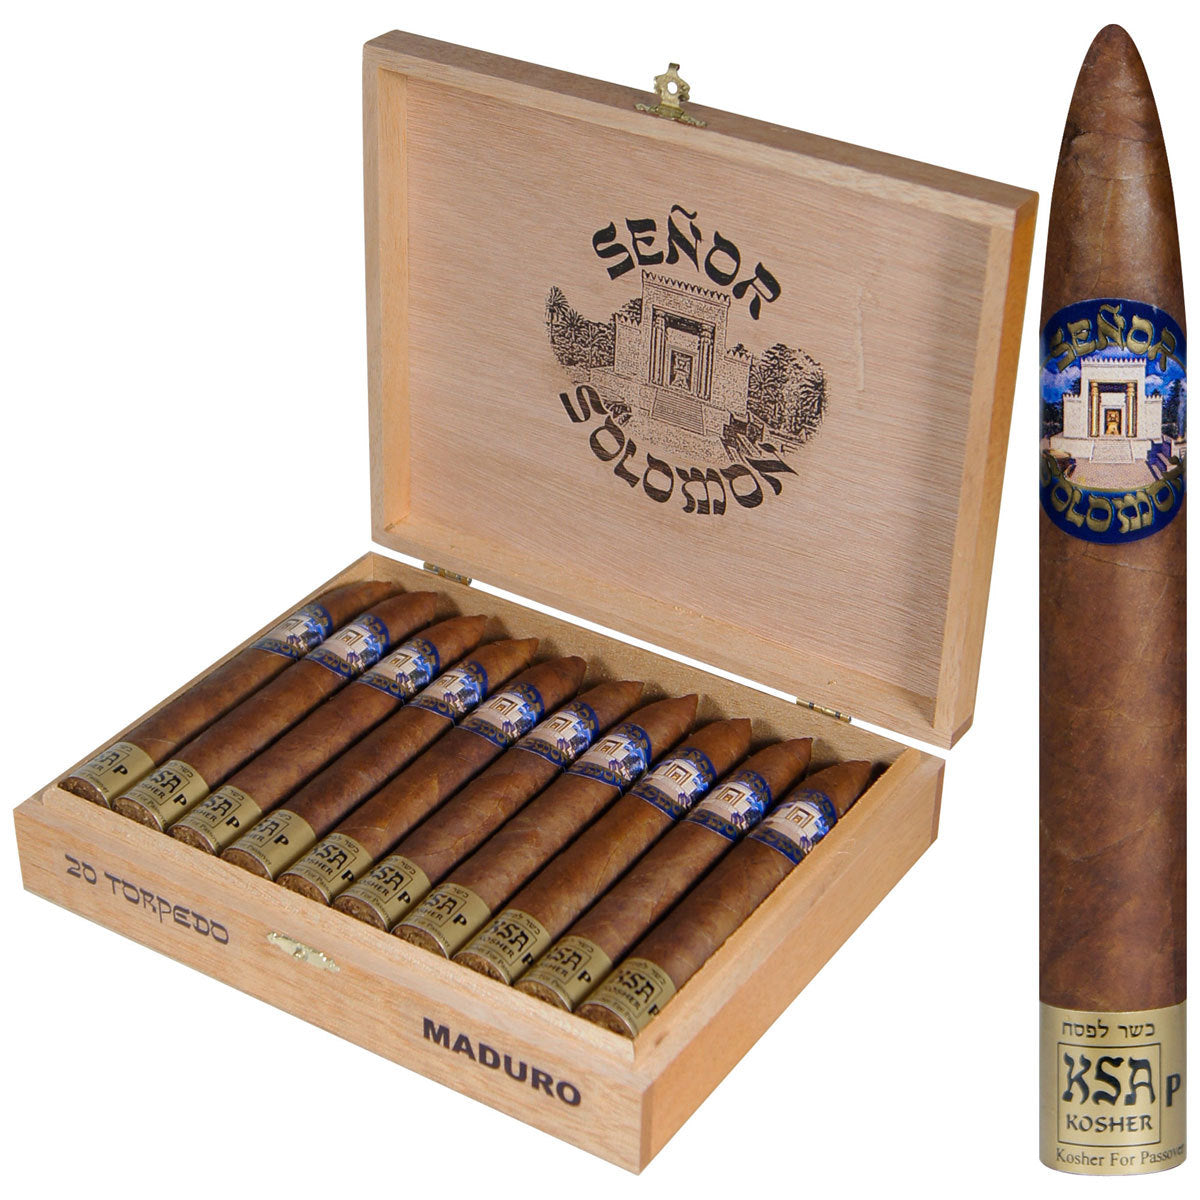 Kosher Cigars Senor Solomon Maduro Box of 20 - Cigar boulevard